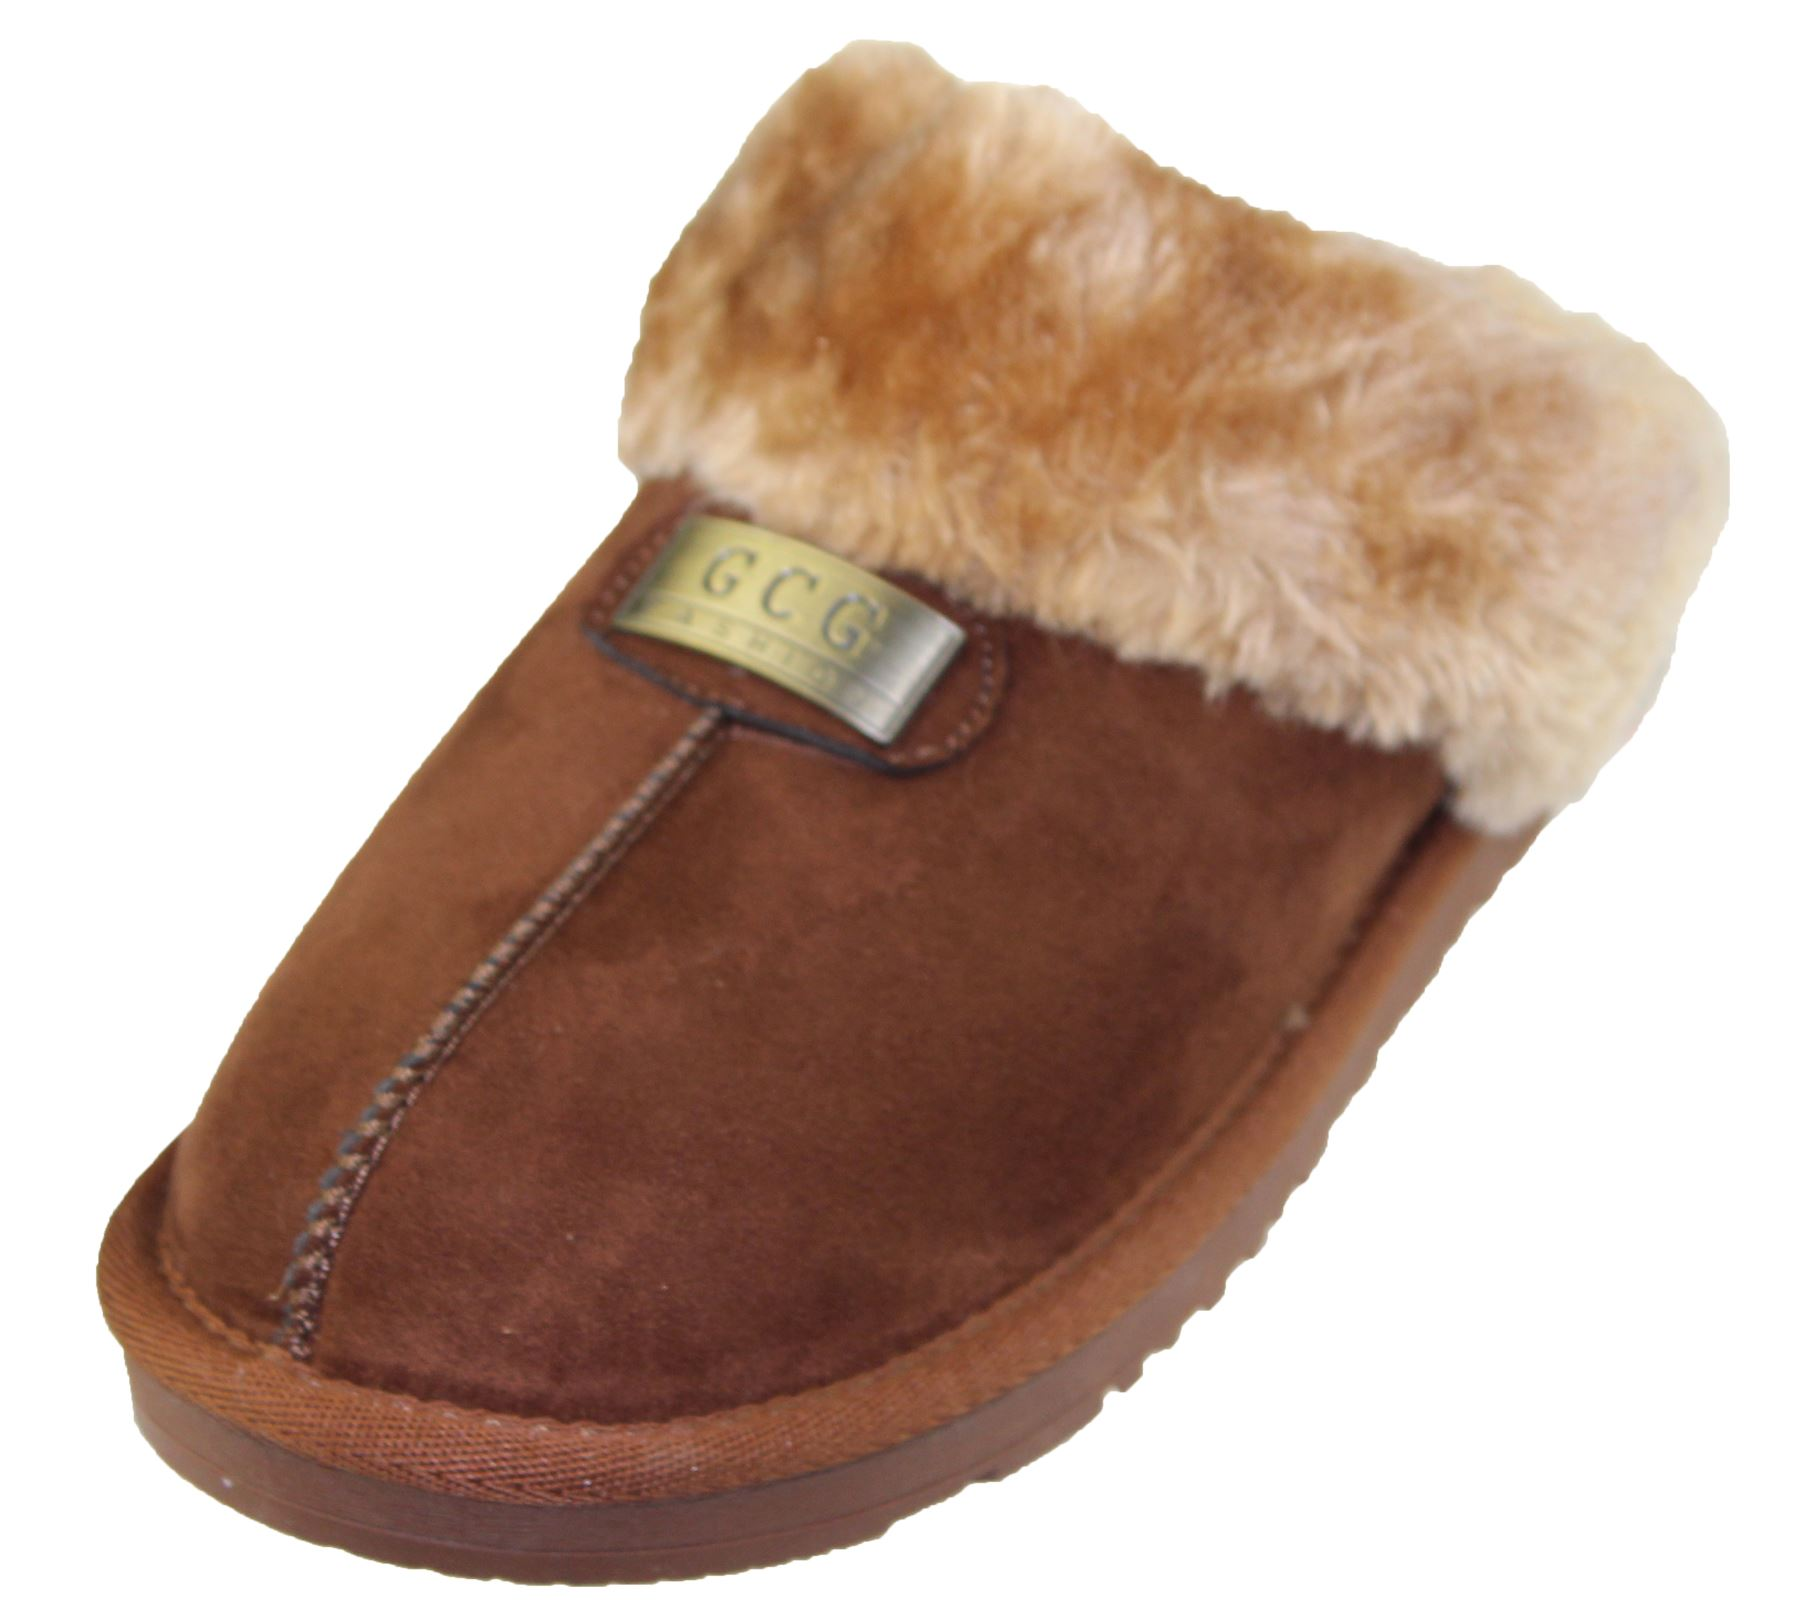 Womens-Fur-Lined-Slippers-Ladies-Mules-Non-Slip-Rubber-Sole-Shoes miniatura 14